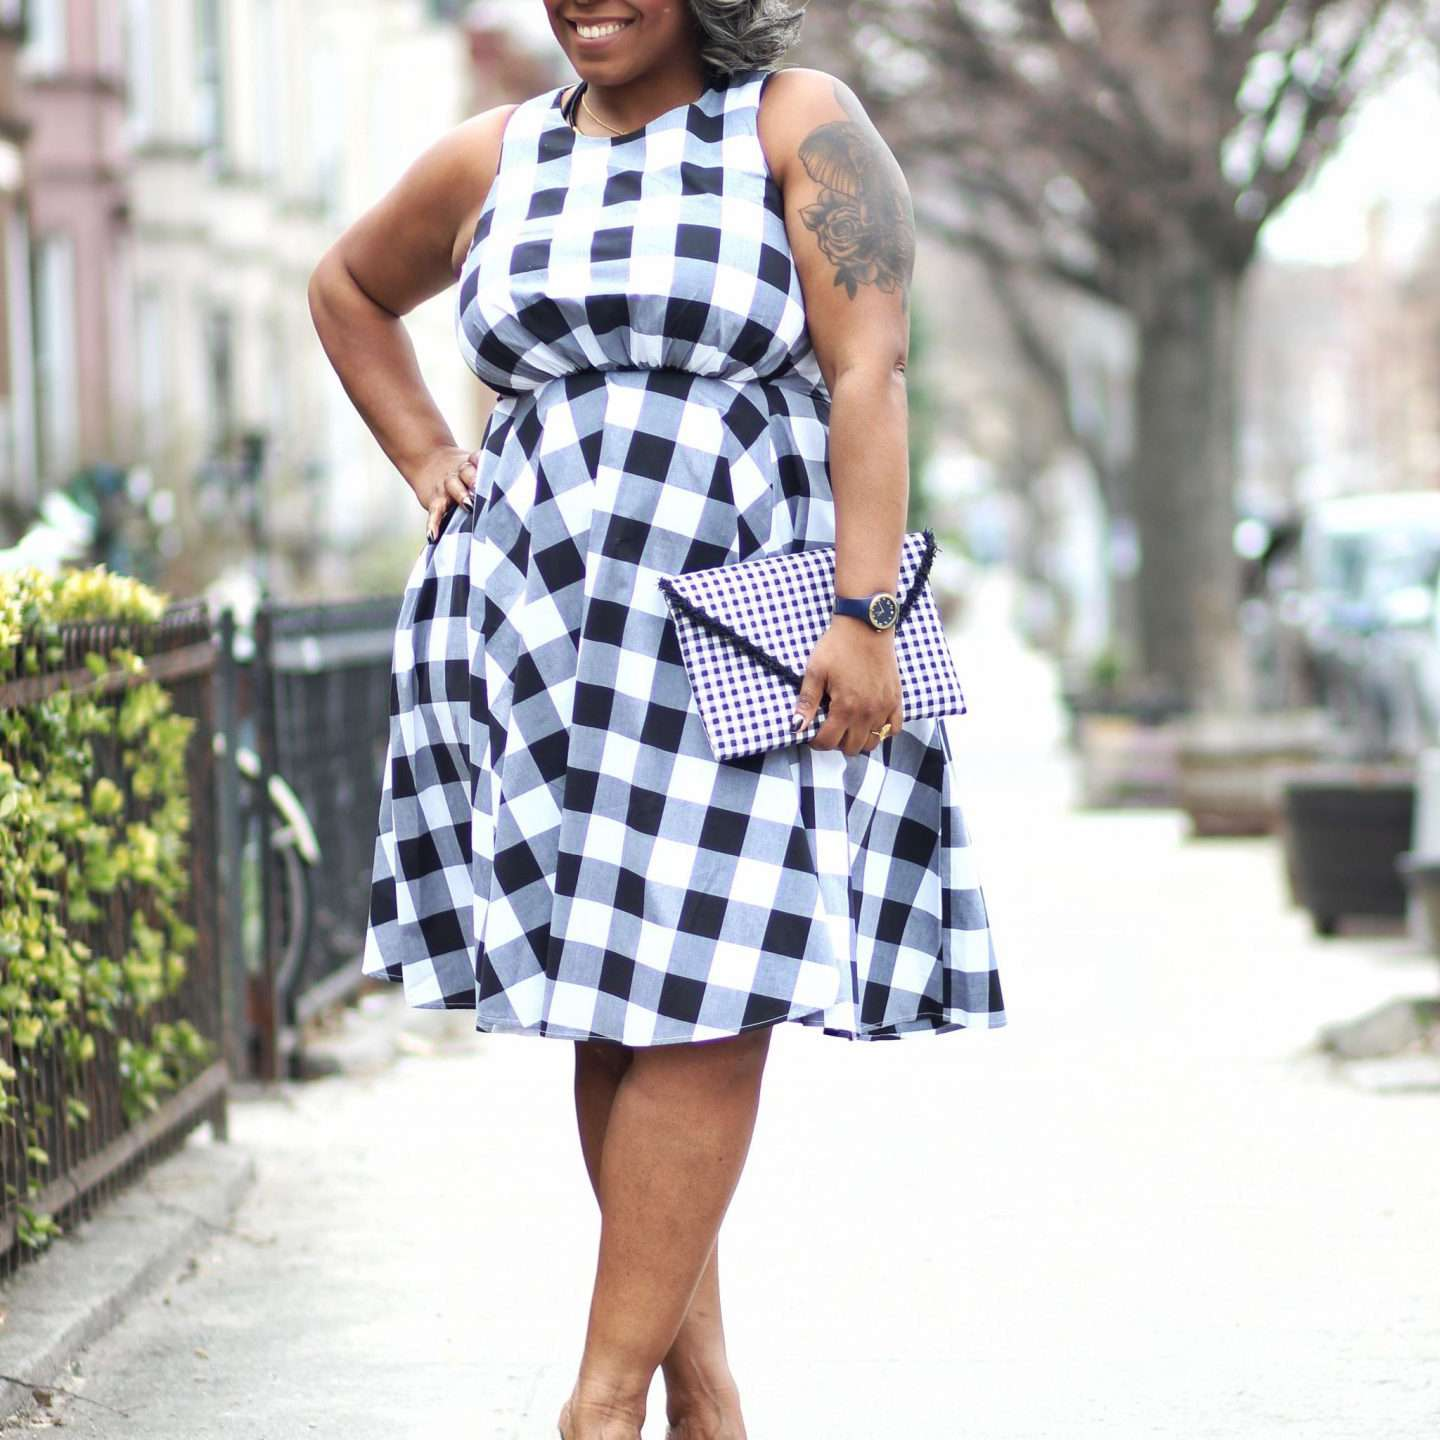 Woman in gingham summer dress